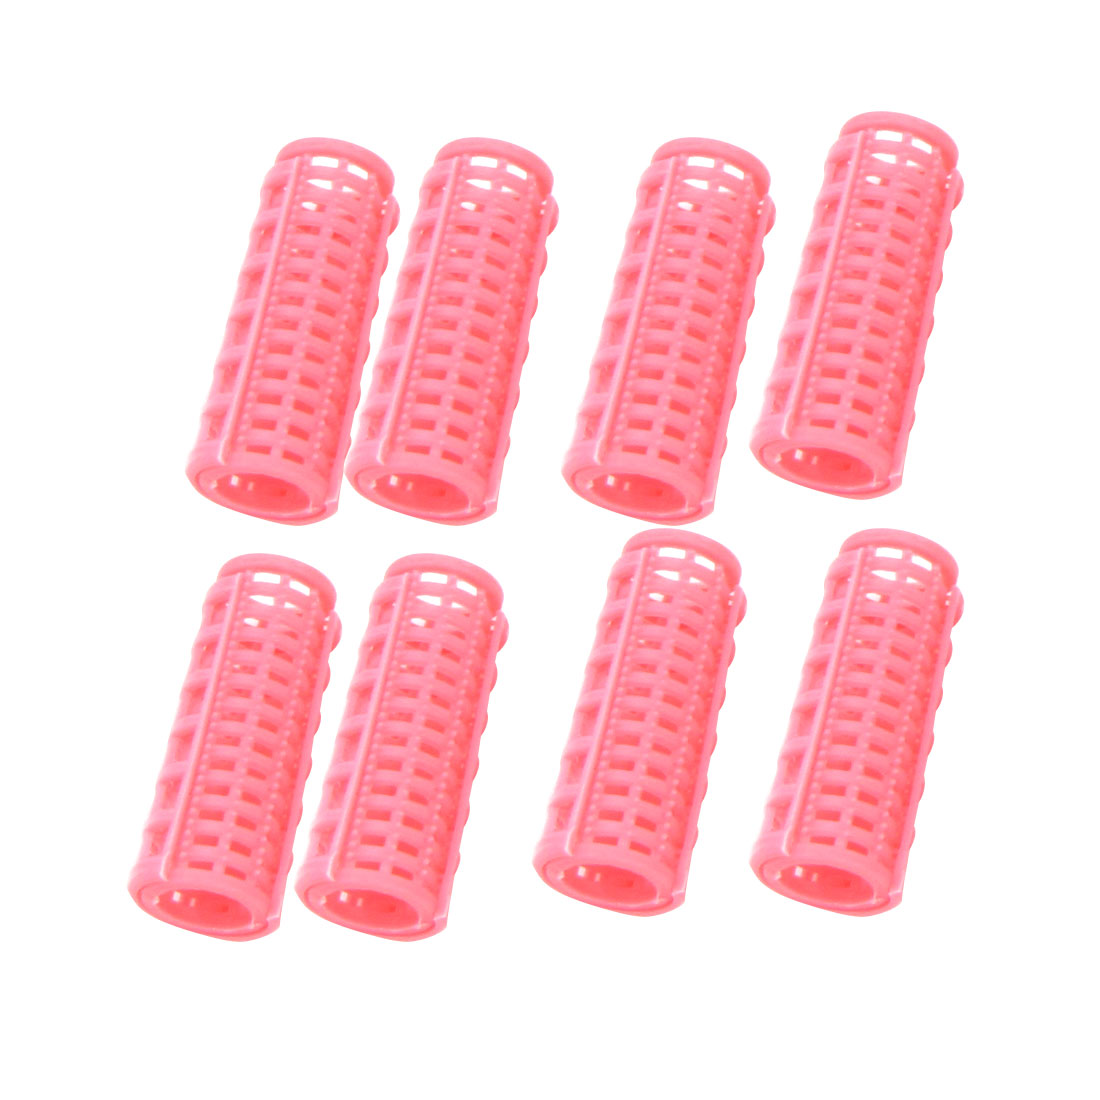 8 Pcs Pink Plastic DIY Hair Styling Salon Curlers Roller for Ladies